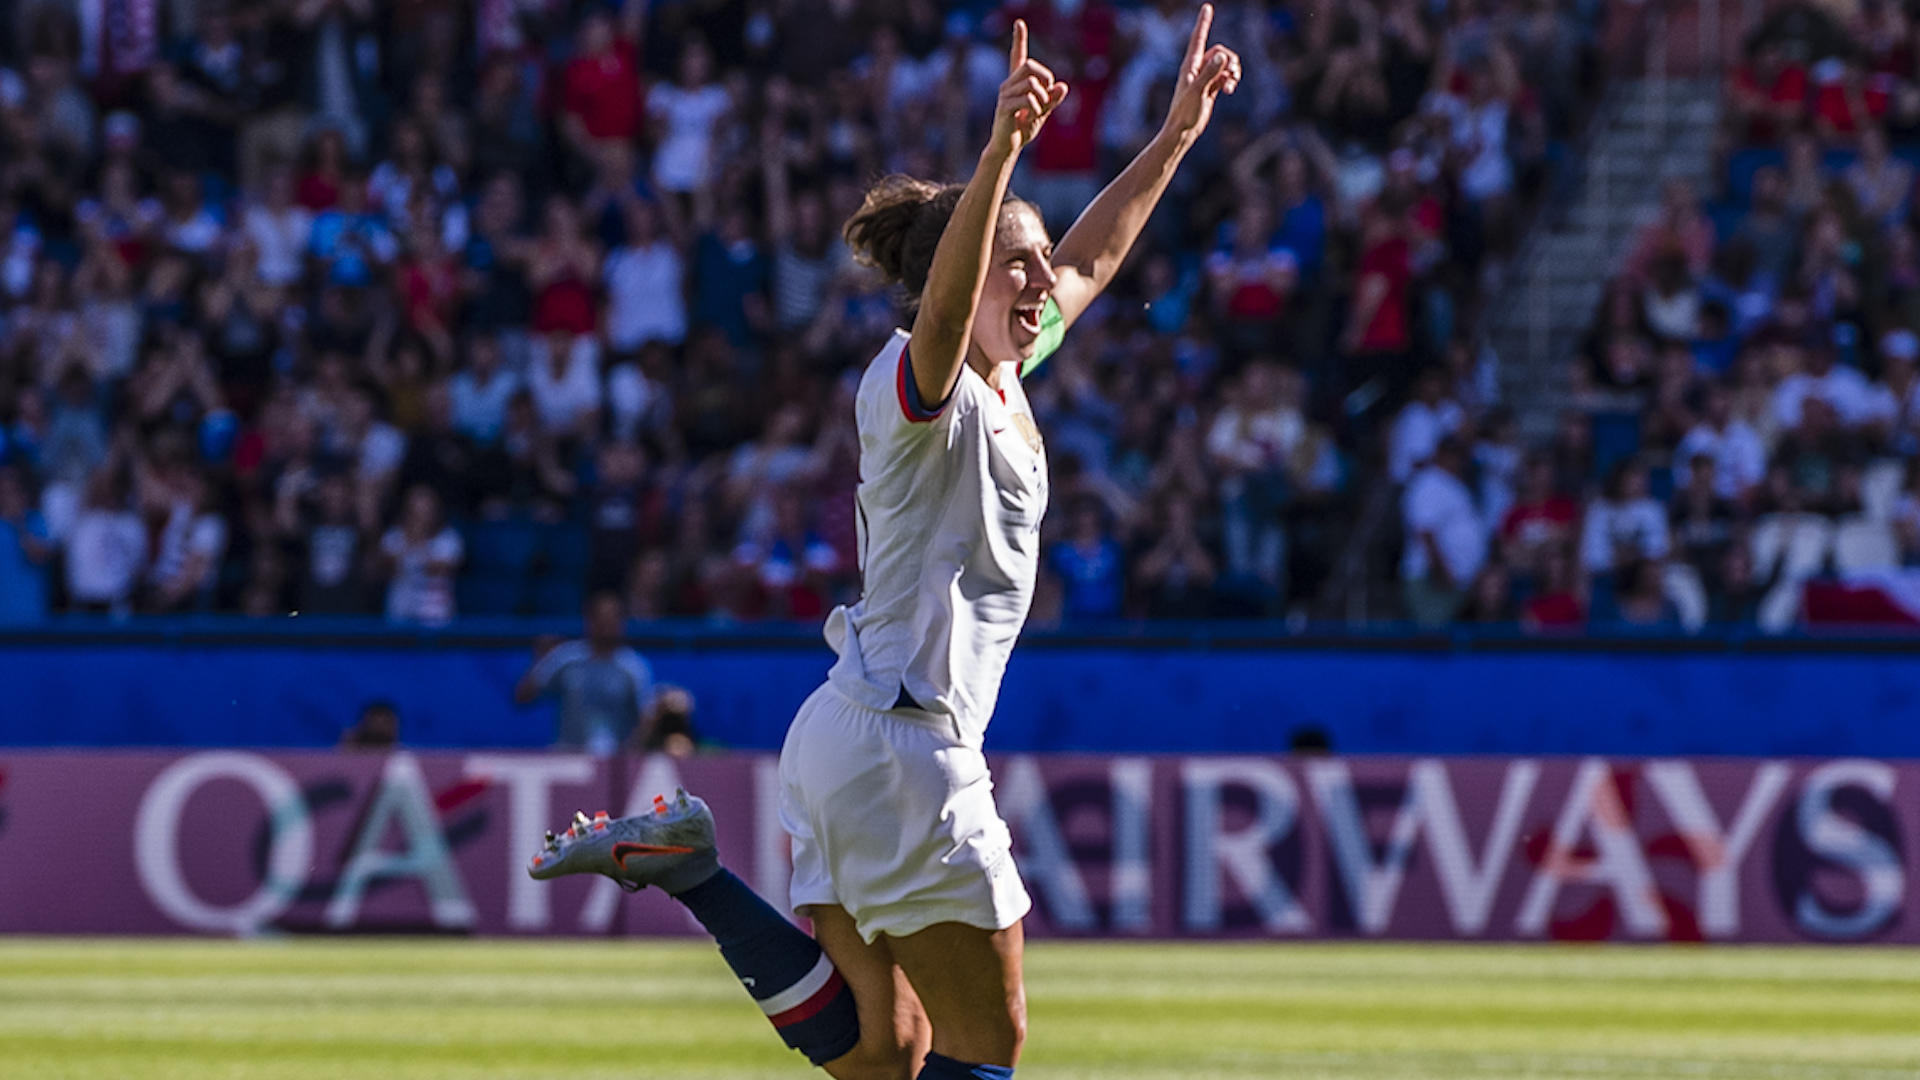 Women's World Cup 2019 scores, news: Who's into the round of 16 and who's out as only four spots remain